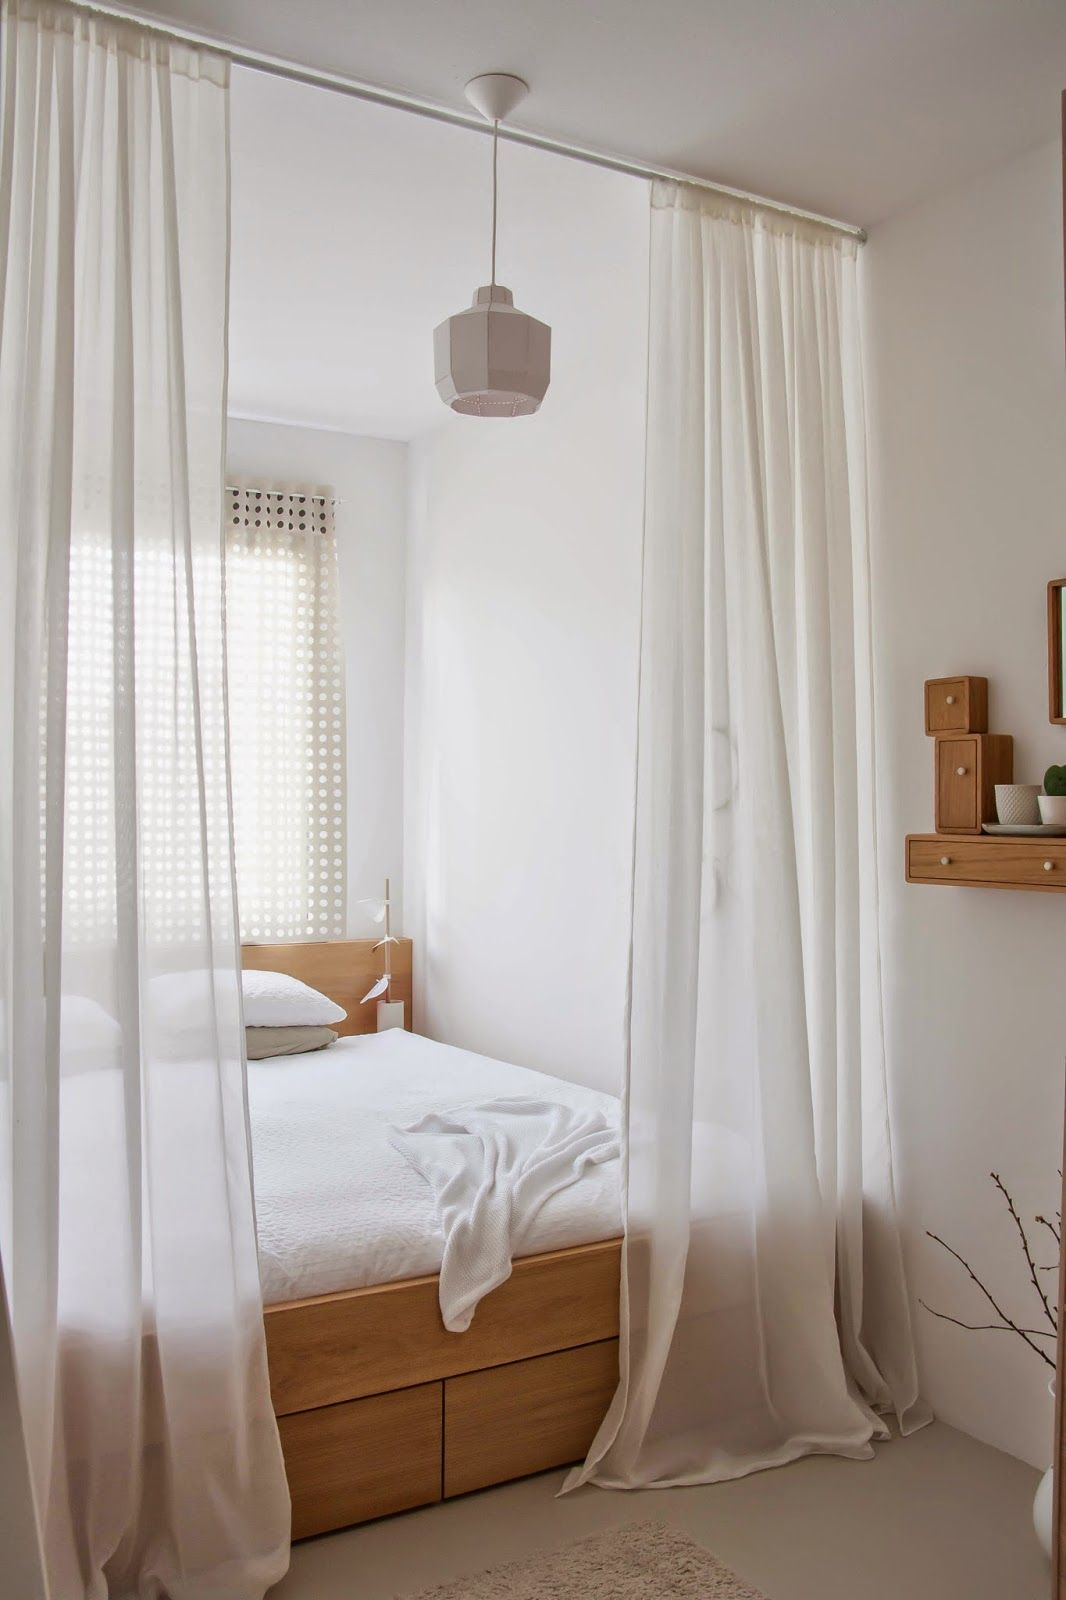 How To Create Dreamy Bedrooms Using Bed curtains | For the ...